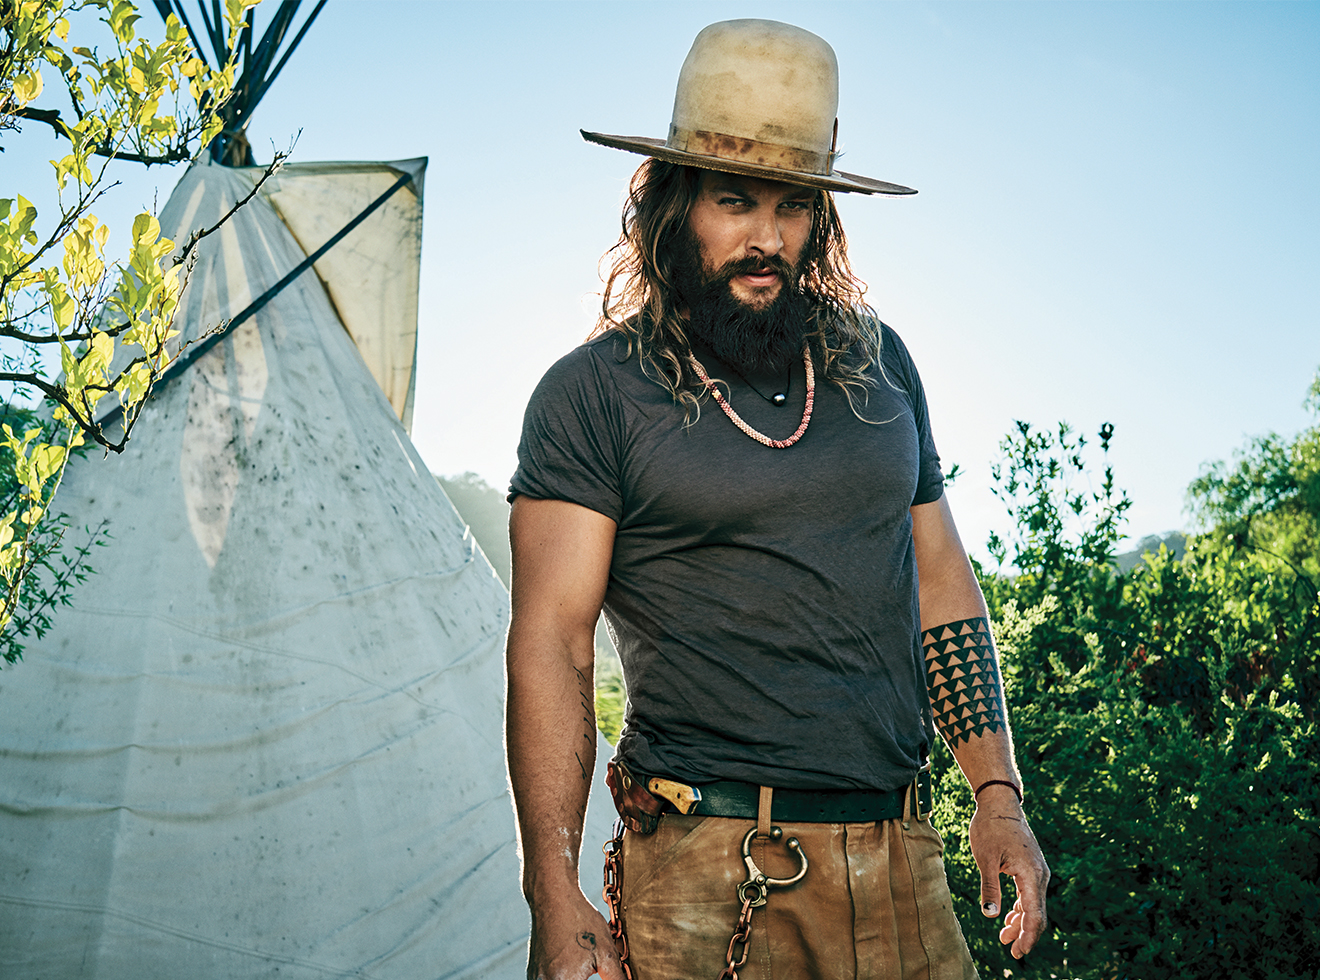 How to Grow and Maintain a Long, Unruly Beard Like Jason Momoa